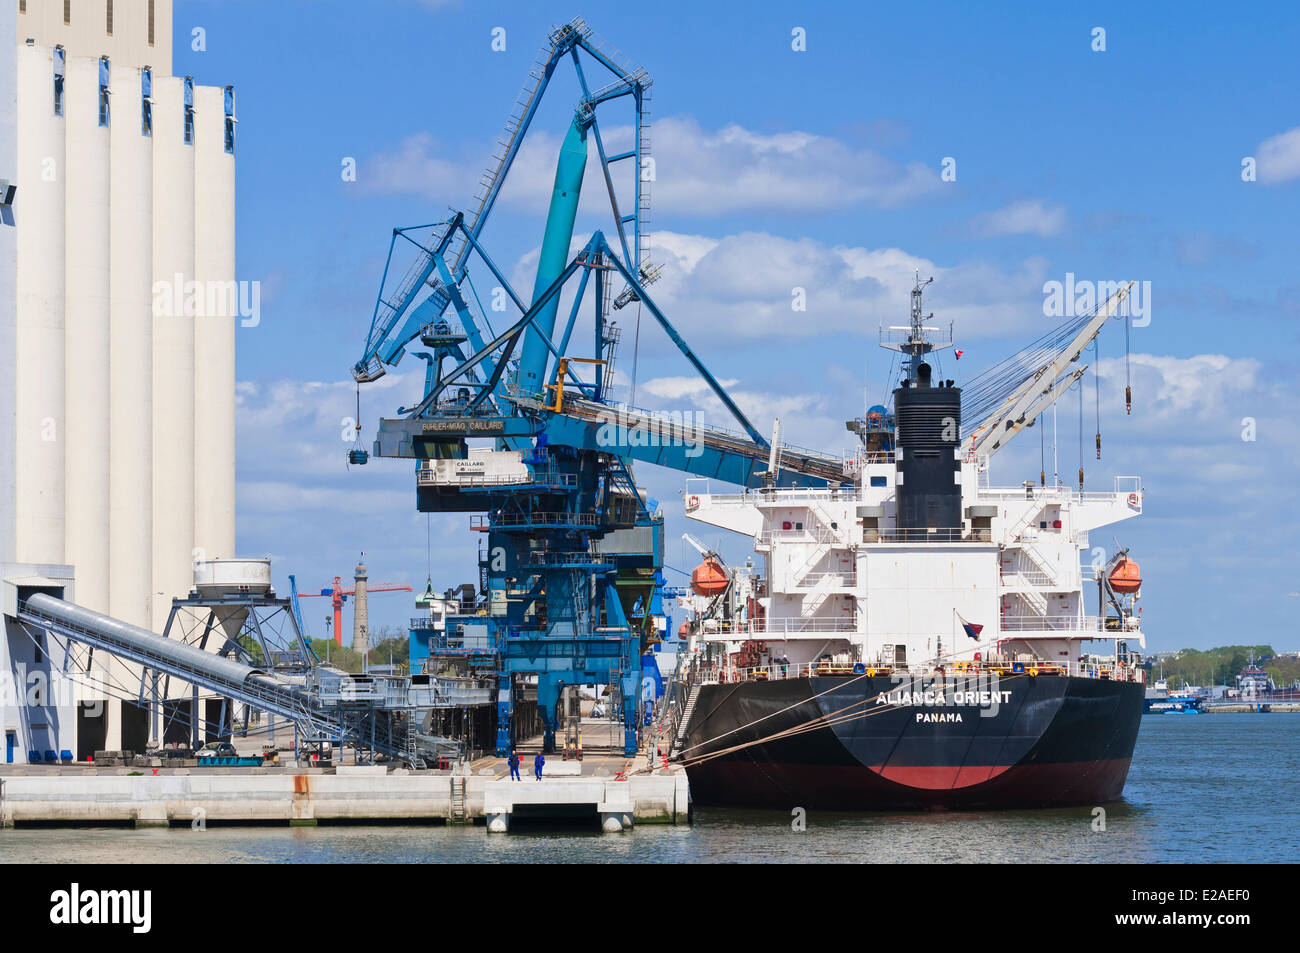 France, Morbihan, Lorient, the trading harbor - Stock Image